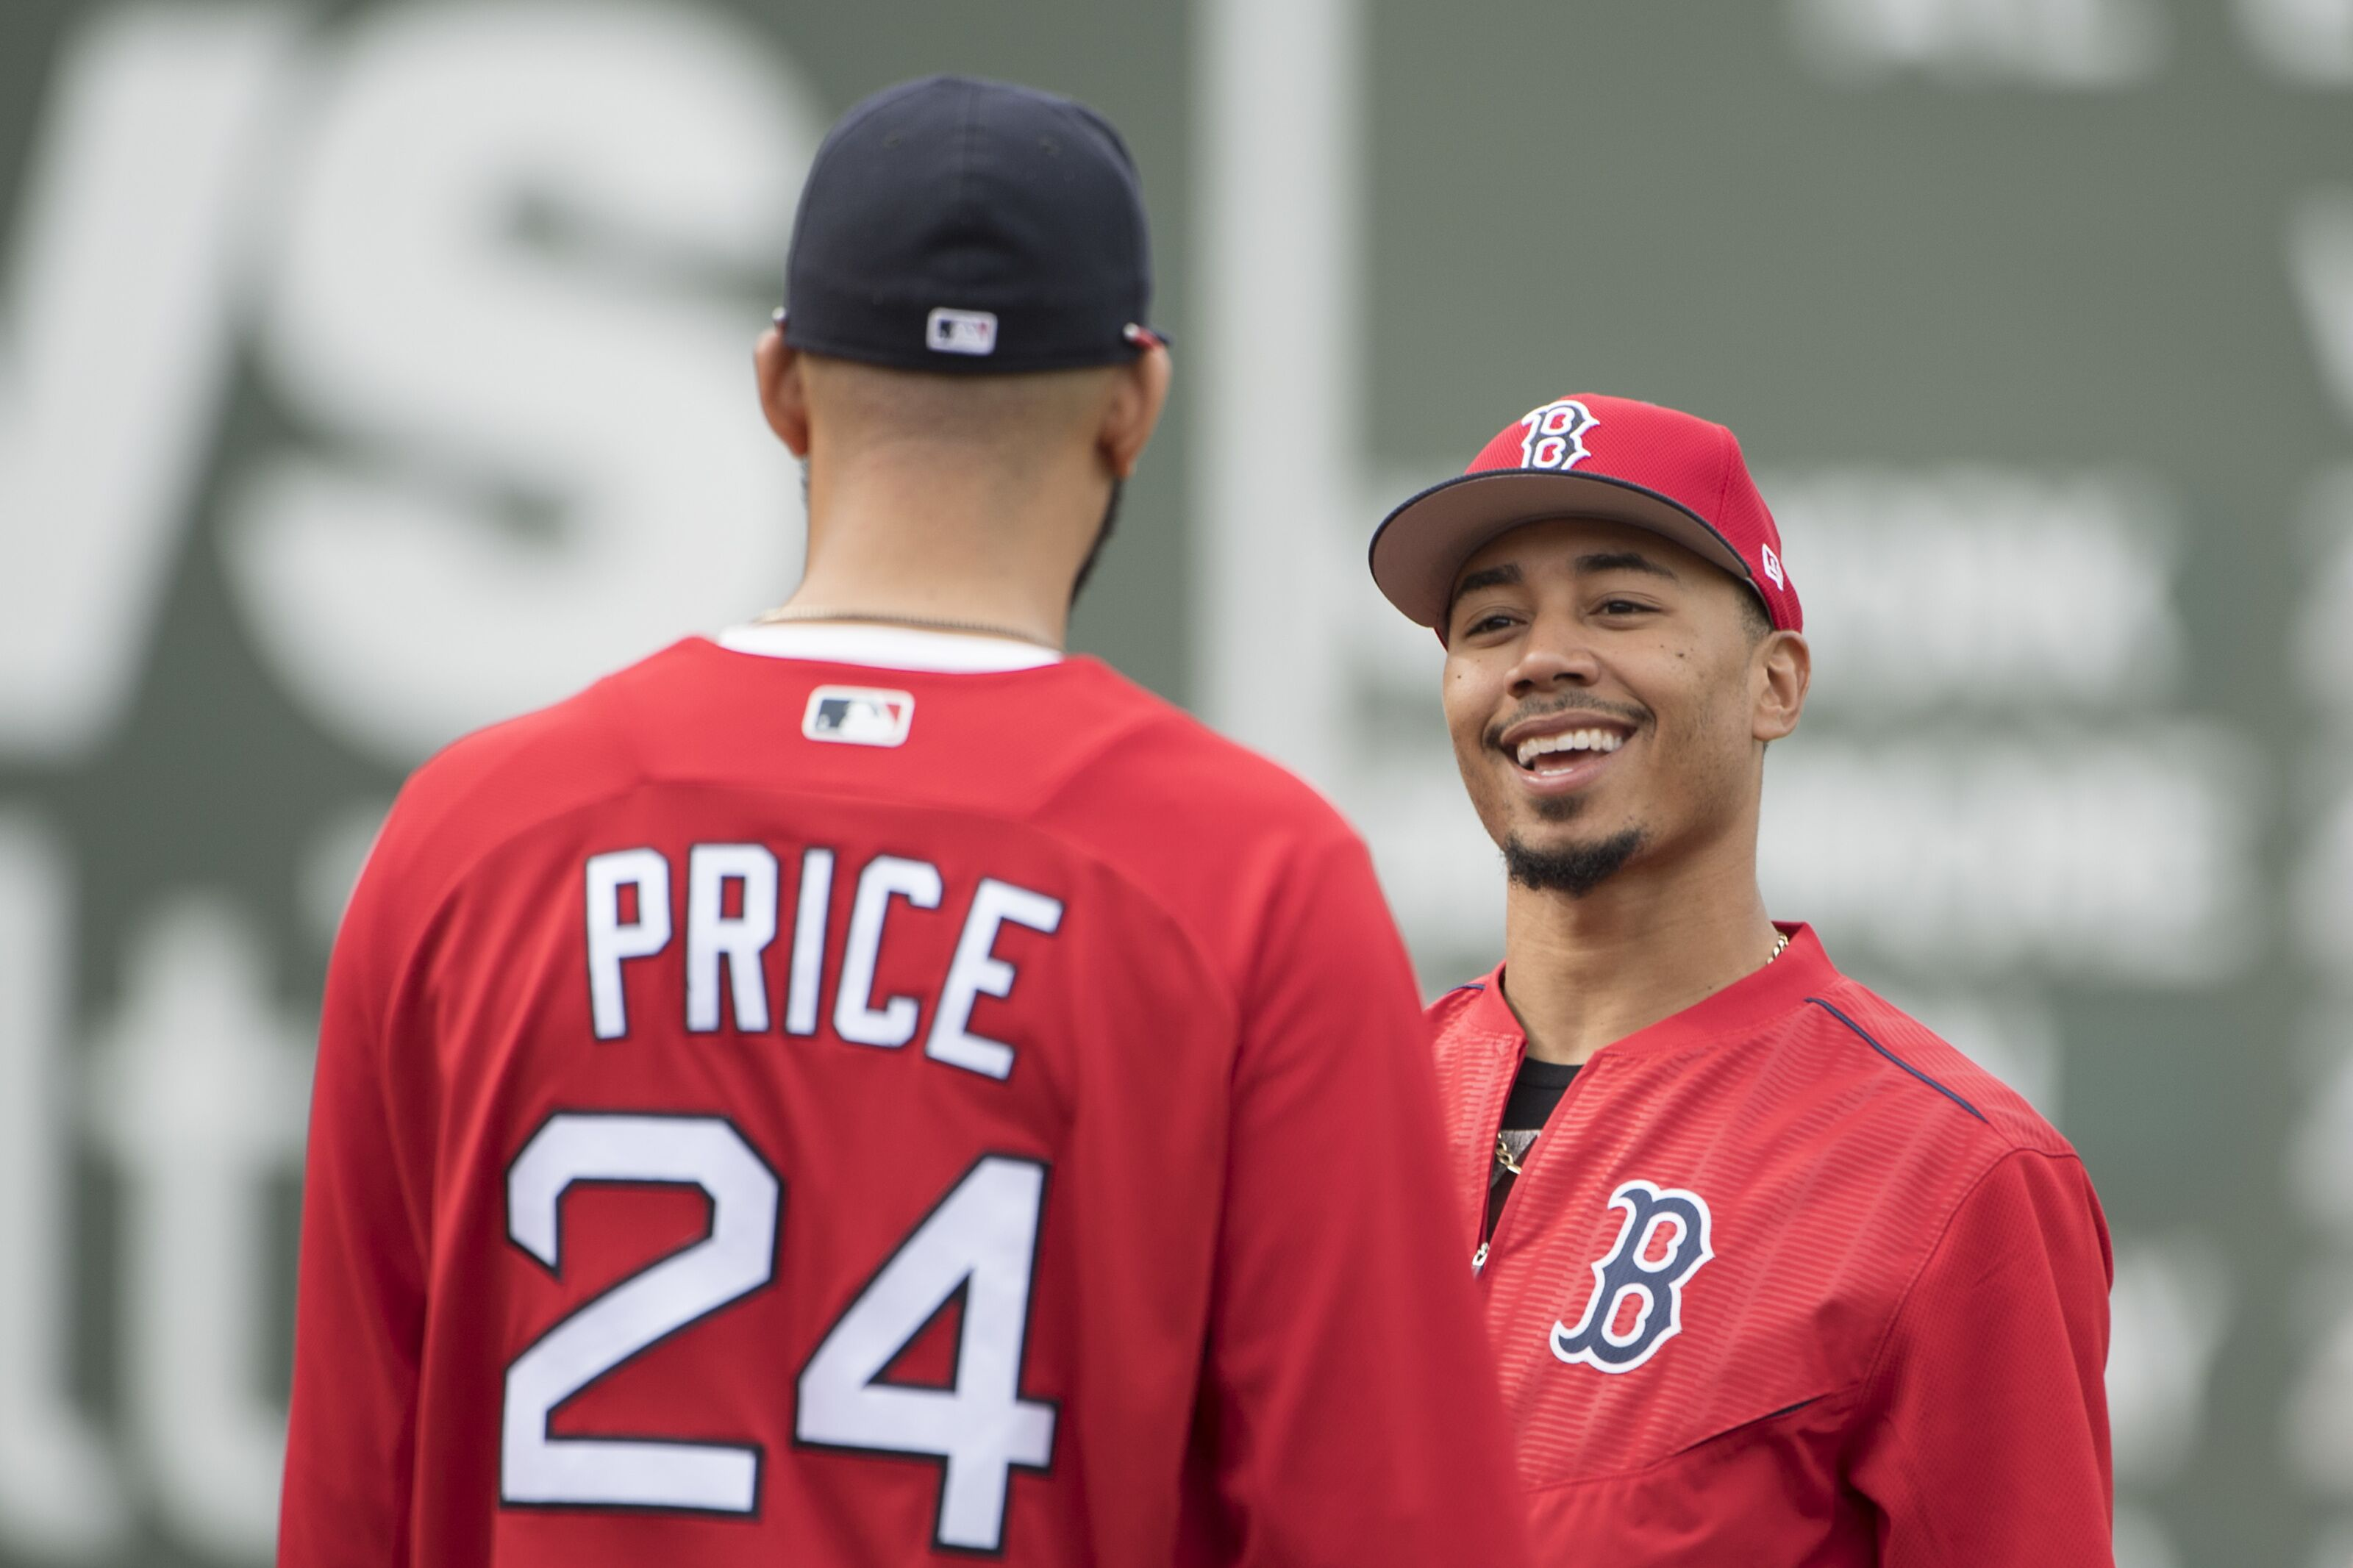 Boston Red Sox: What would a trade package with the Dodgers look like for Mookie Betts?